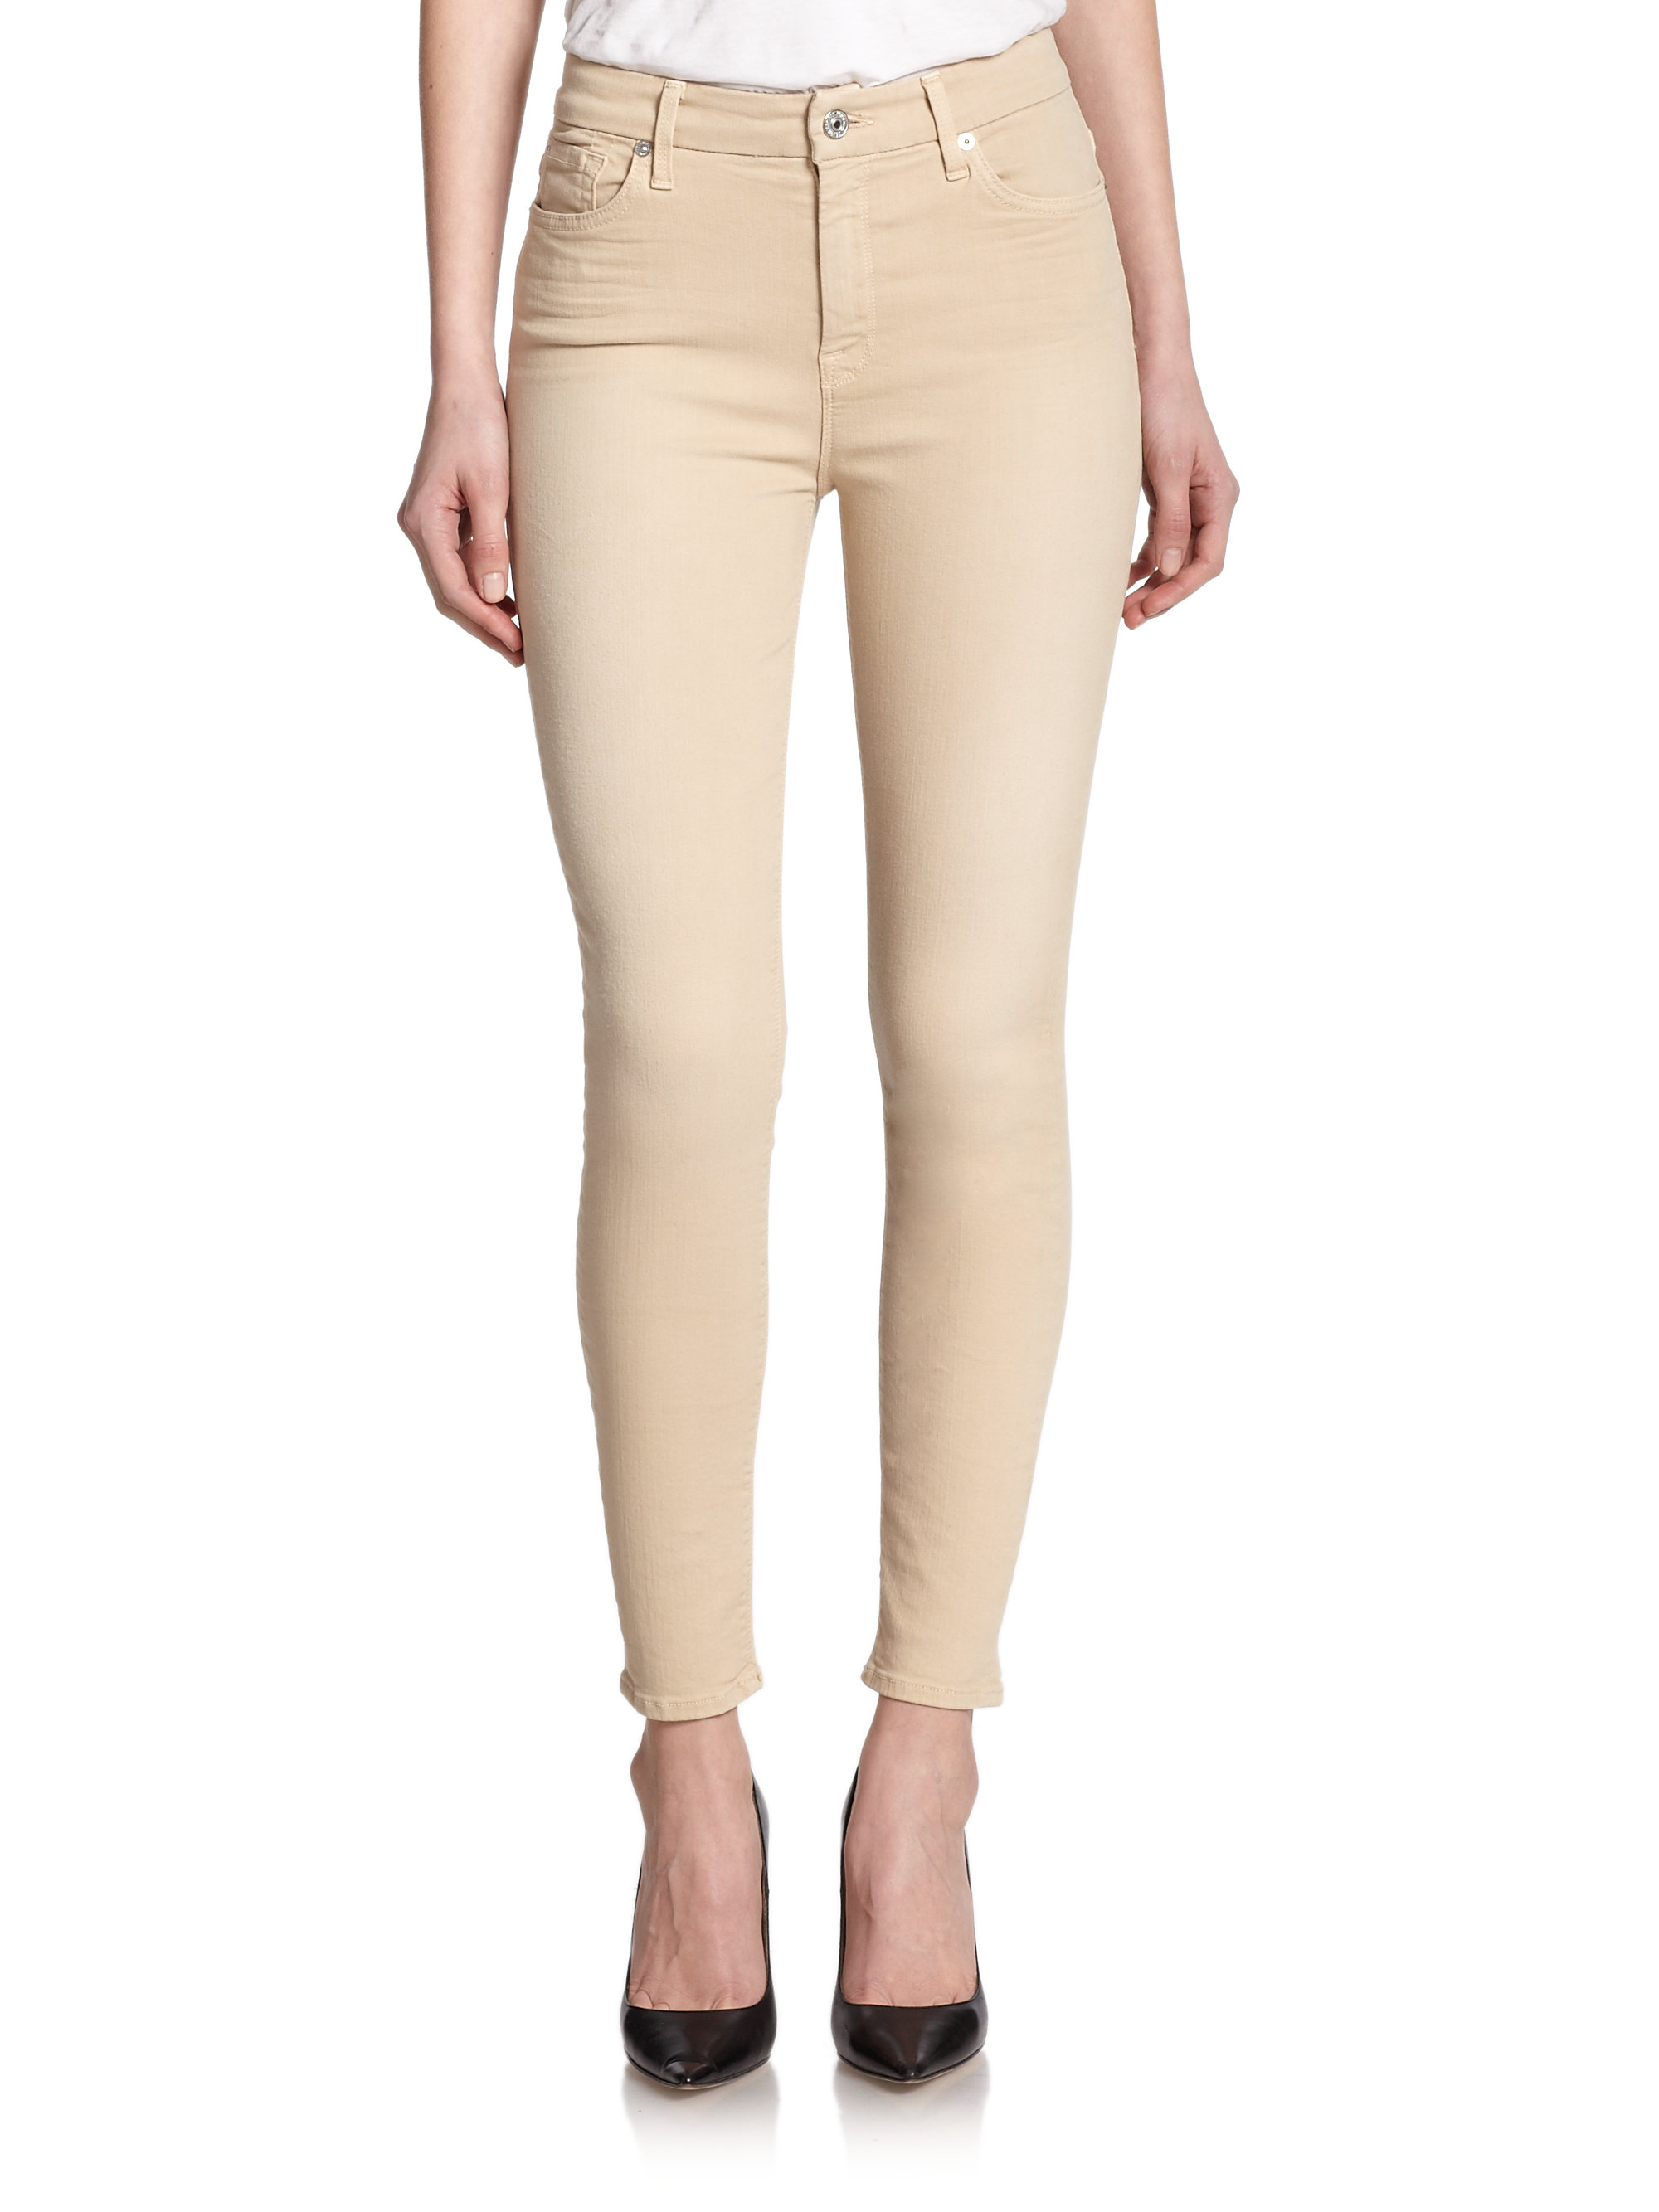 7 for all mankind High Waist Ankle Skinny Jeans in Natural | Lyst